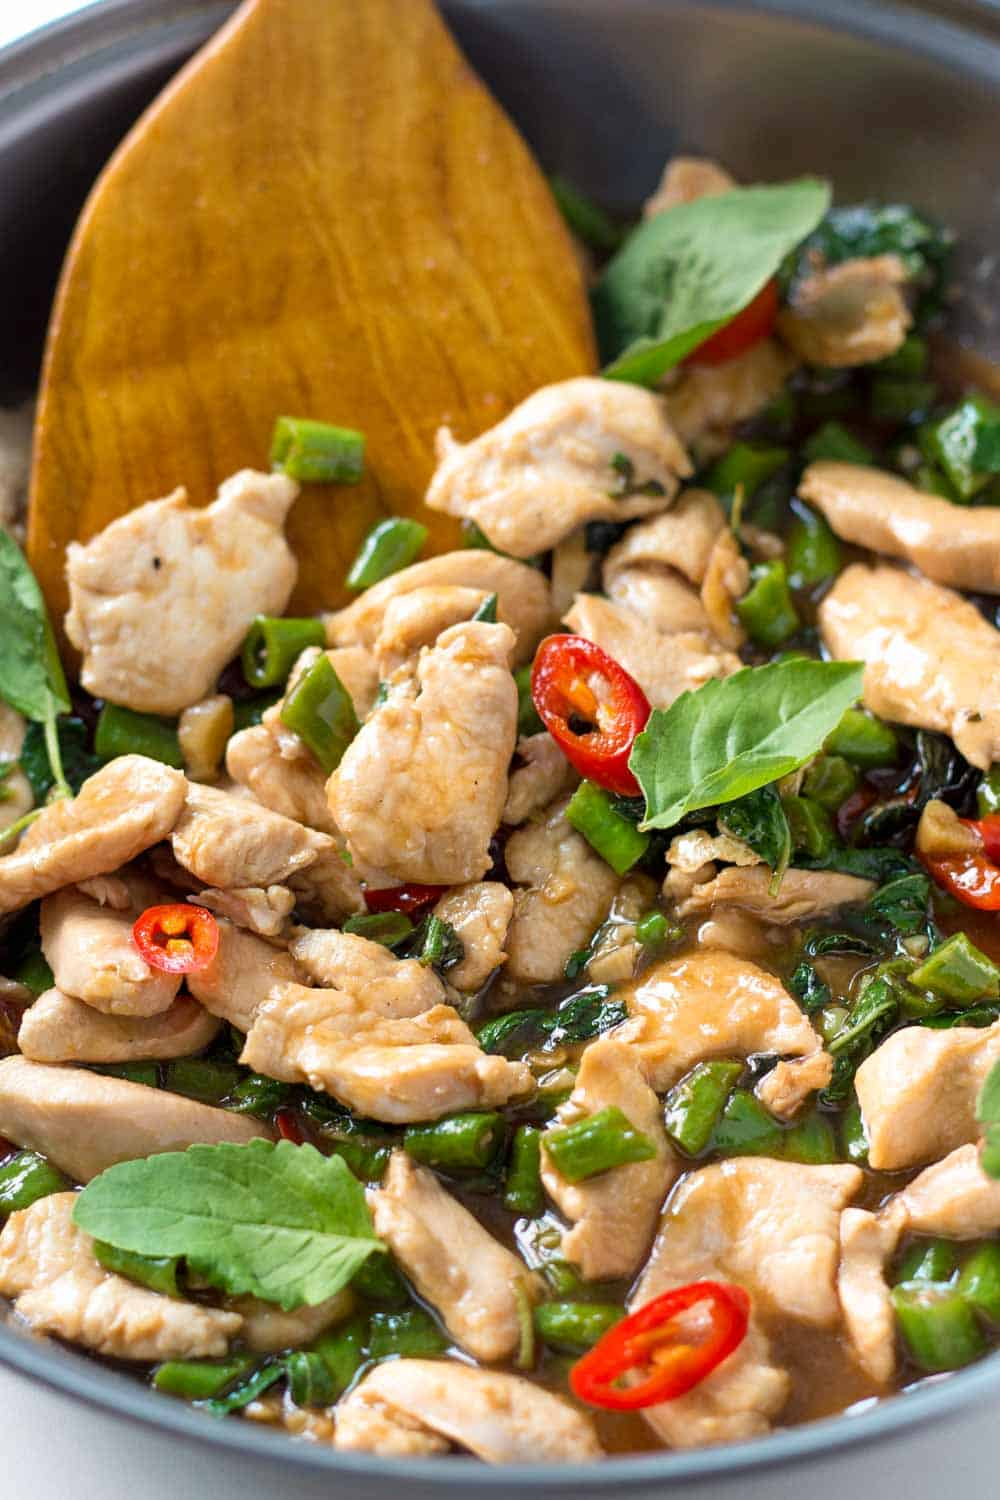 Thai Basil Chicken Stir Fry is a quick and easy dish that is incredibly flavorful. Served alongside steamed rice it's perfect for weeknight dinners - much better and faster than take-out.